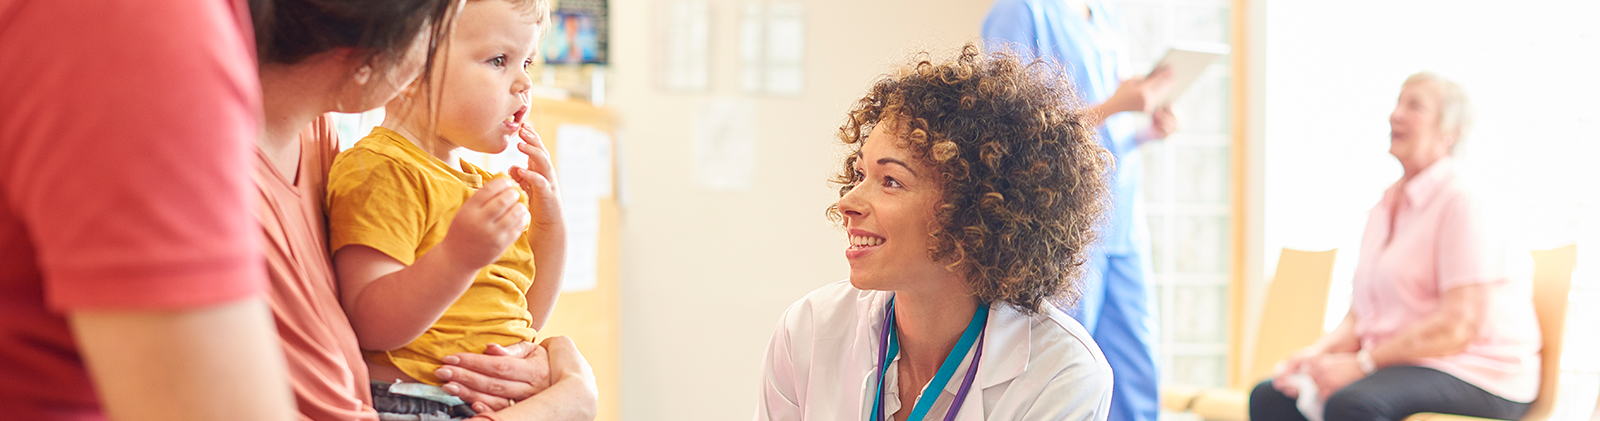 Thinking About Joining a Healthcare Sharing Ministry? Here's What You Need to Know